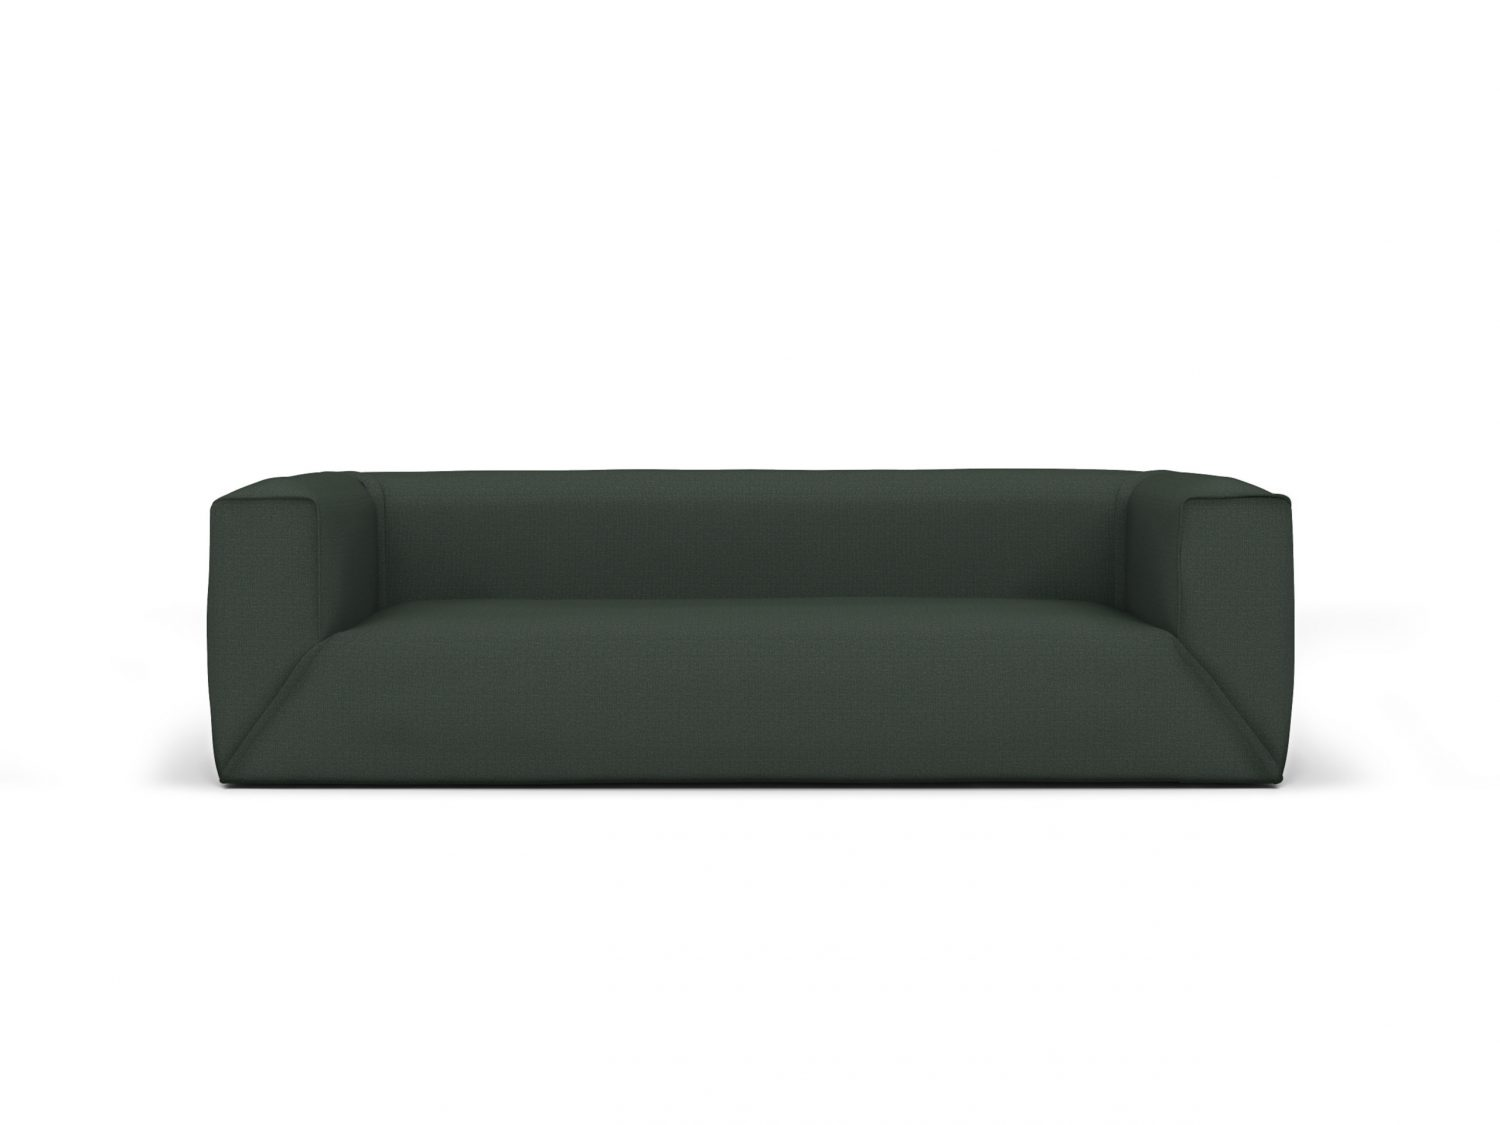 Pac Sofa By Michael Sodeau 2